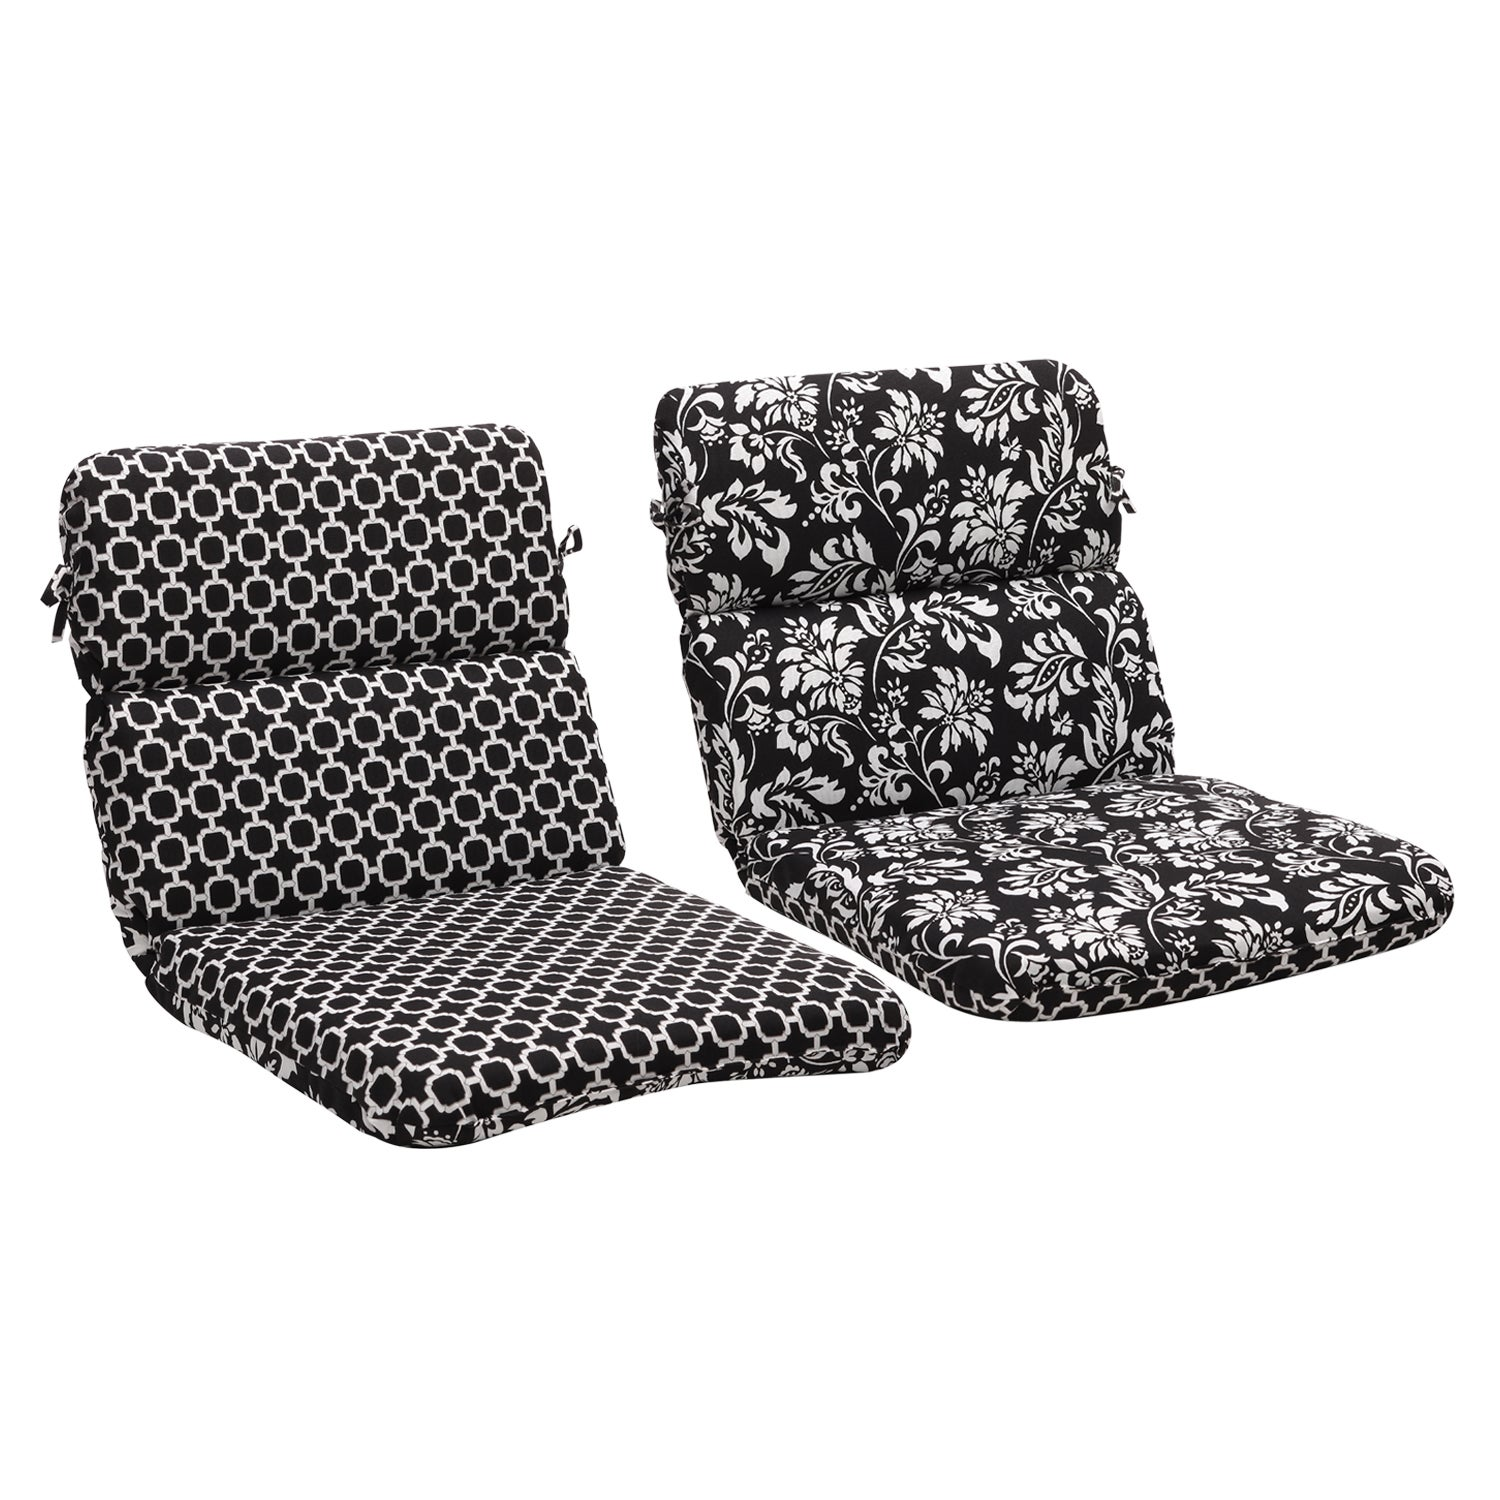 Pillow Perfect Black/ White Geometric/Floral Reversible Outdoor Cushion